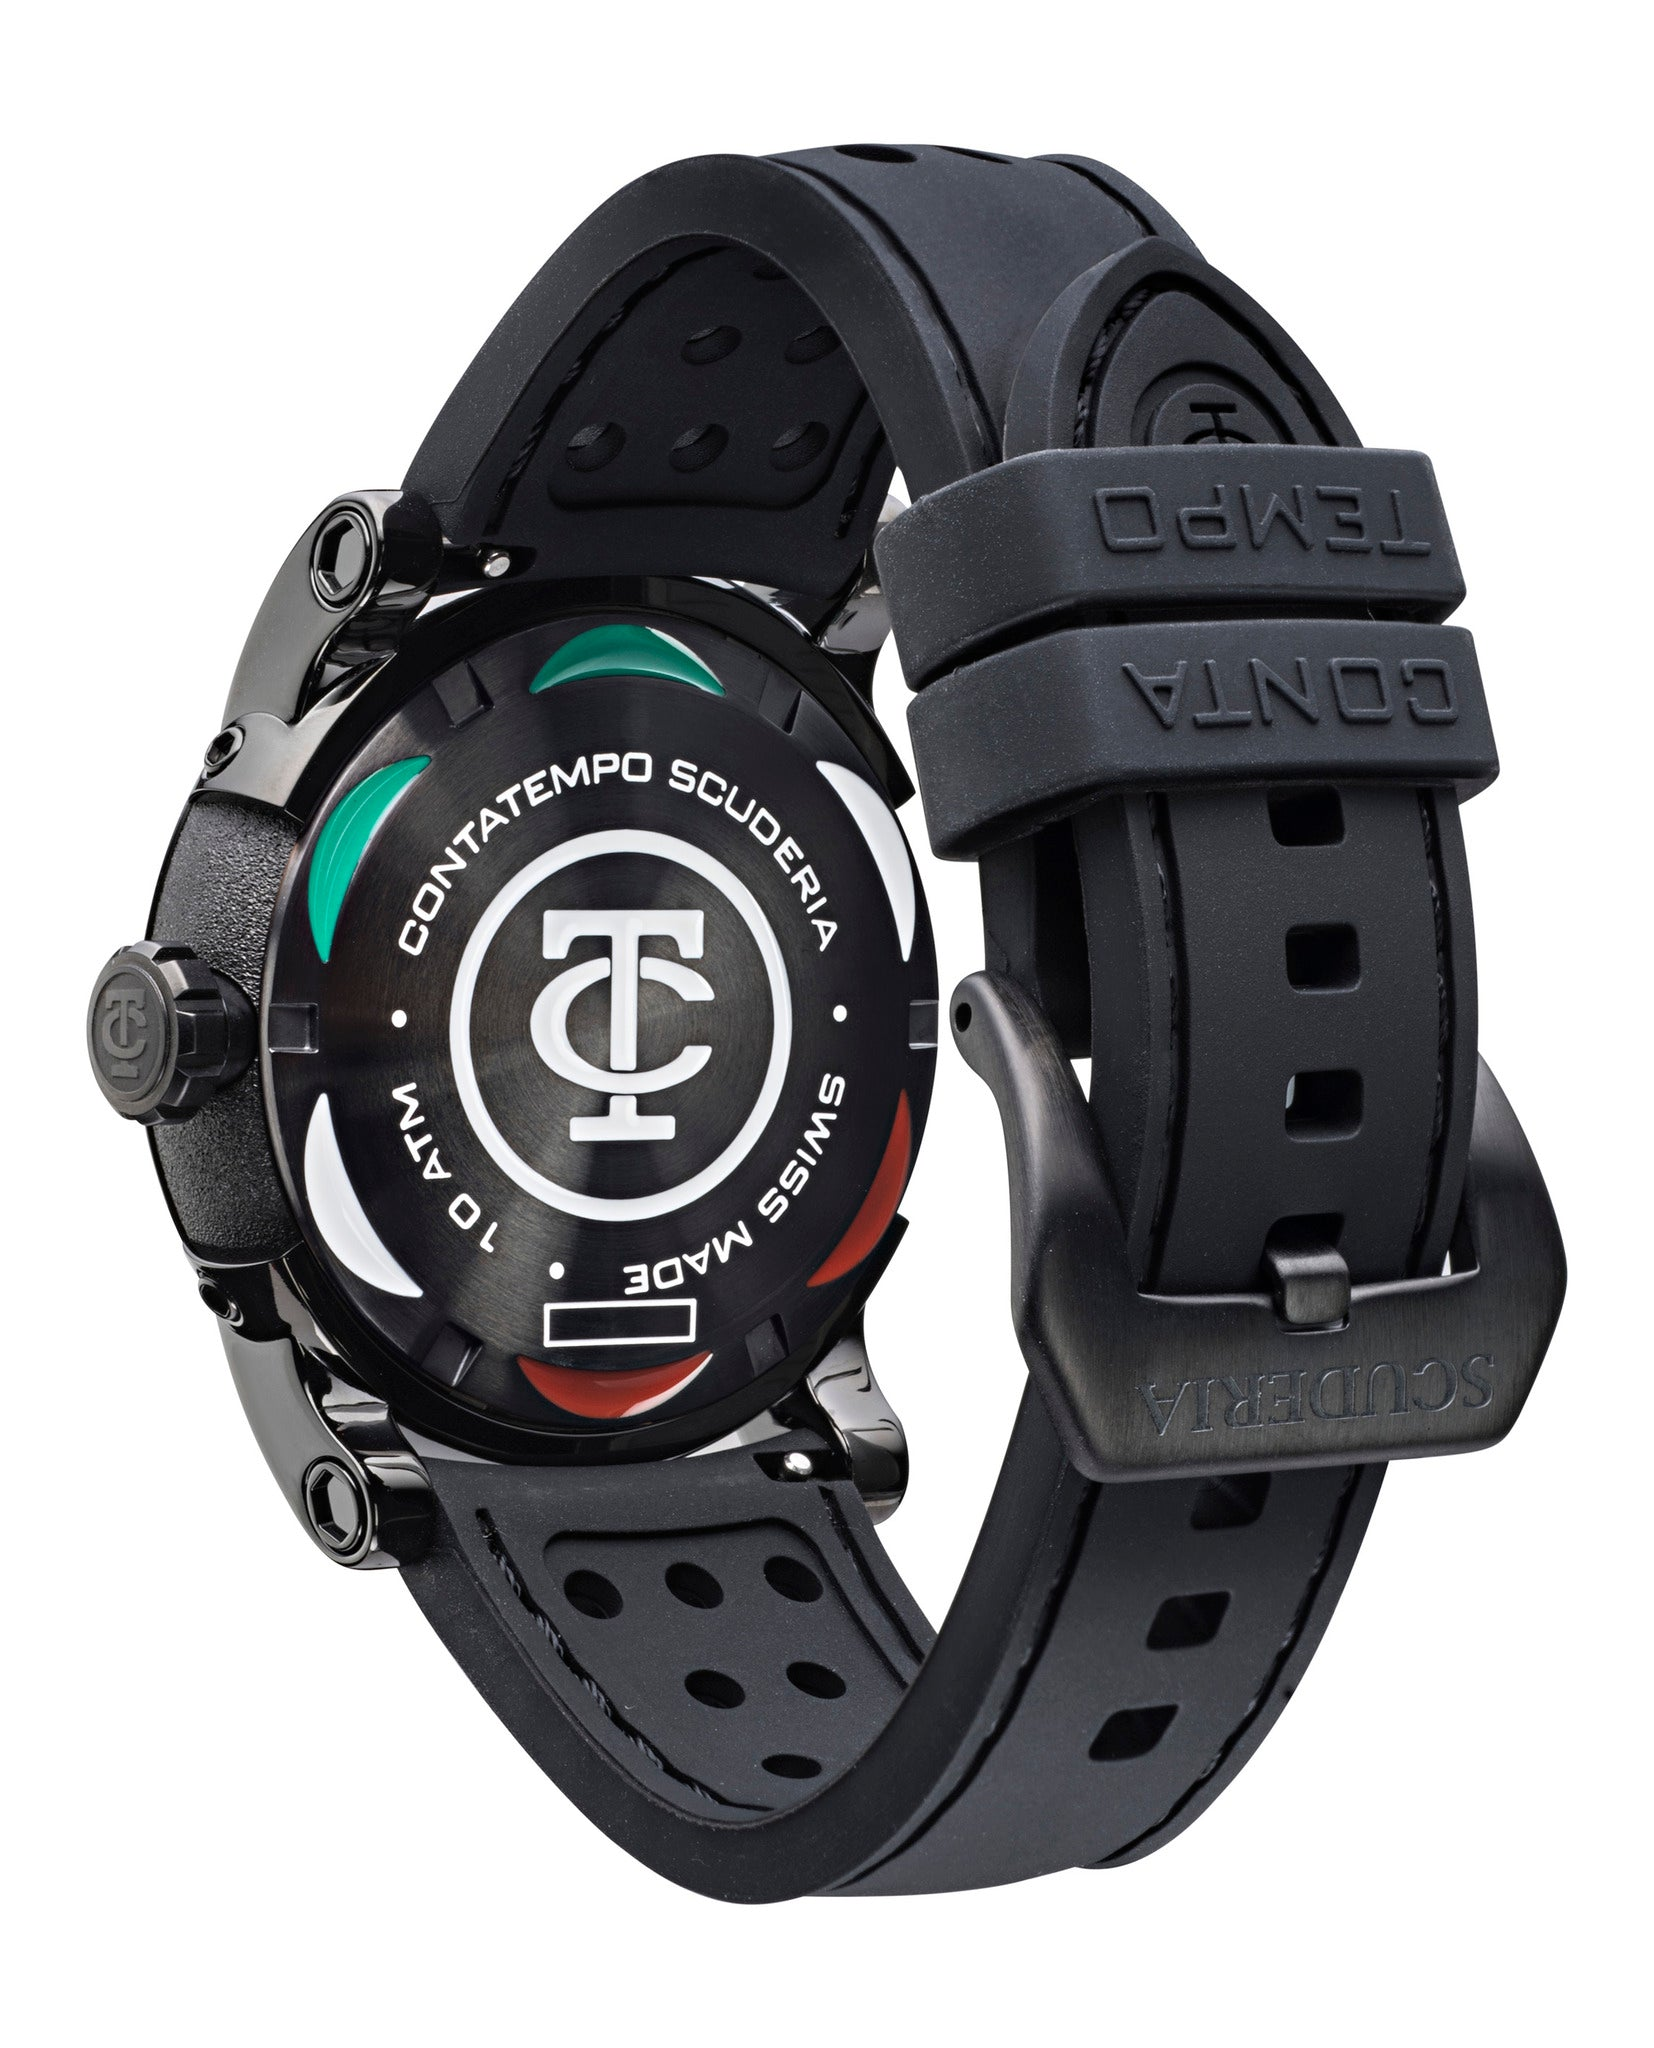 CT Scuderia Testa Piatta Watch